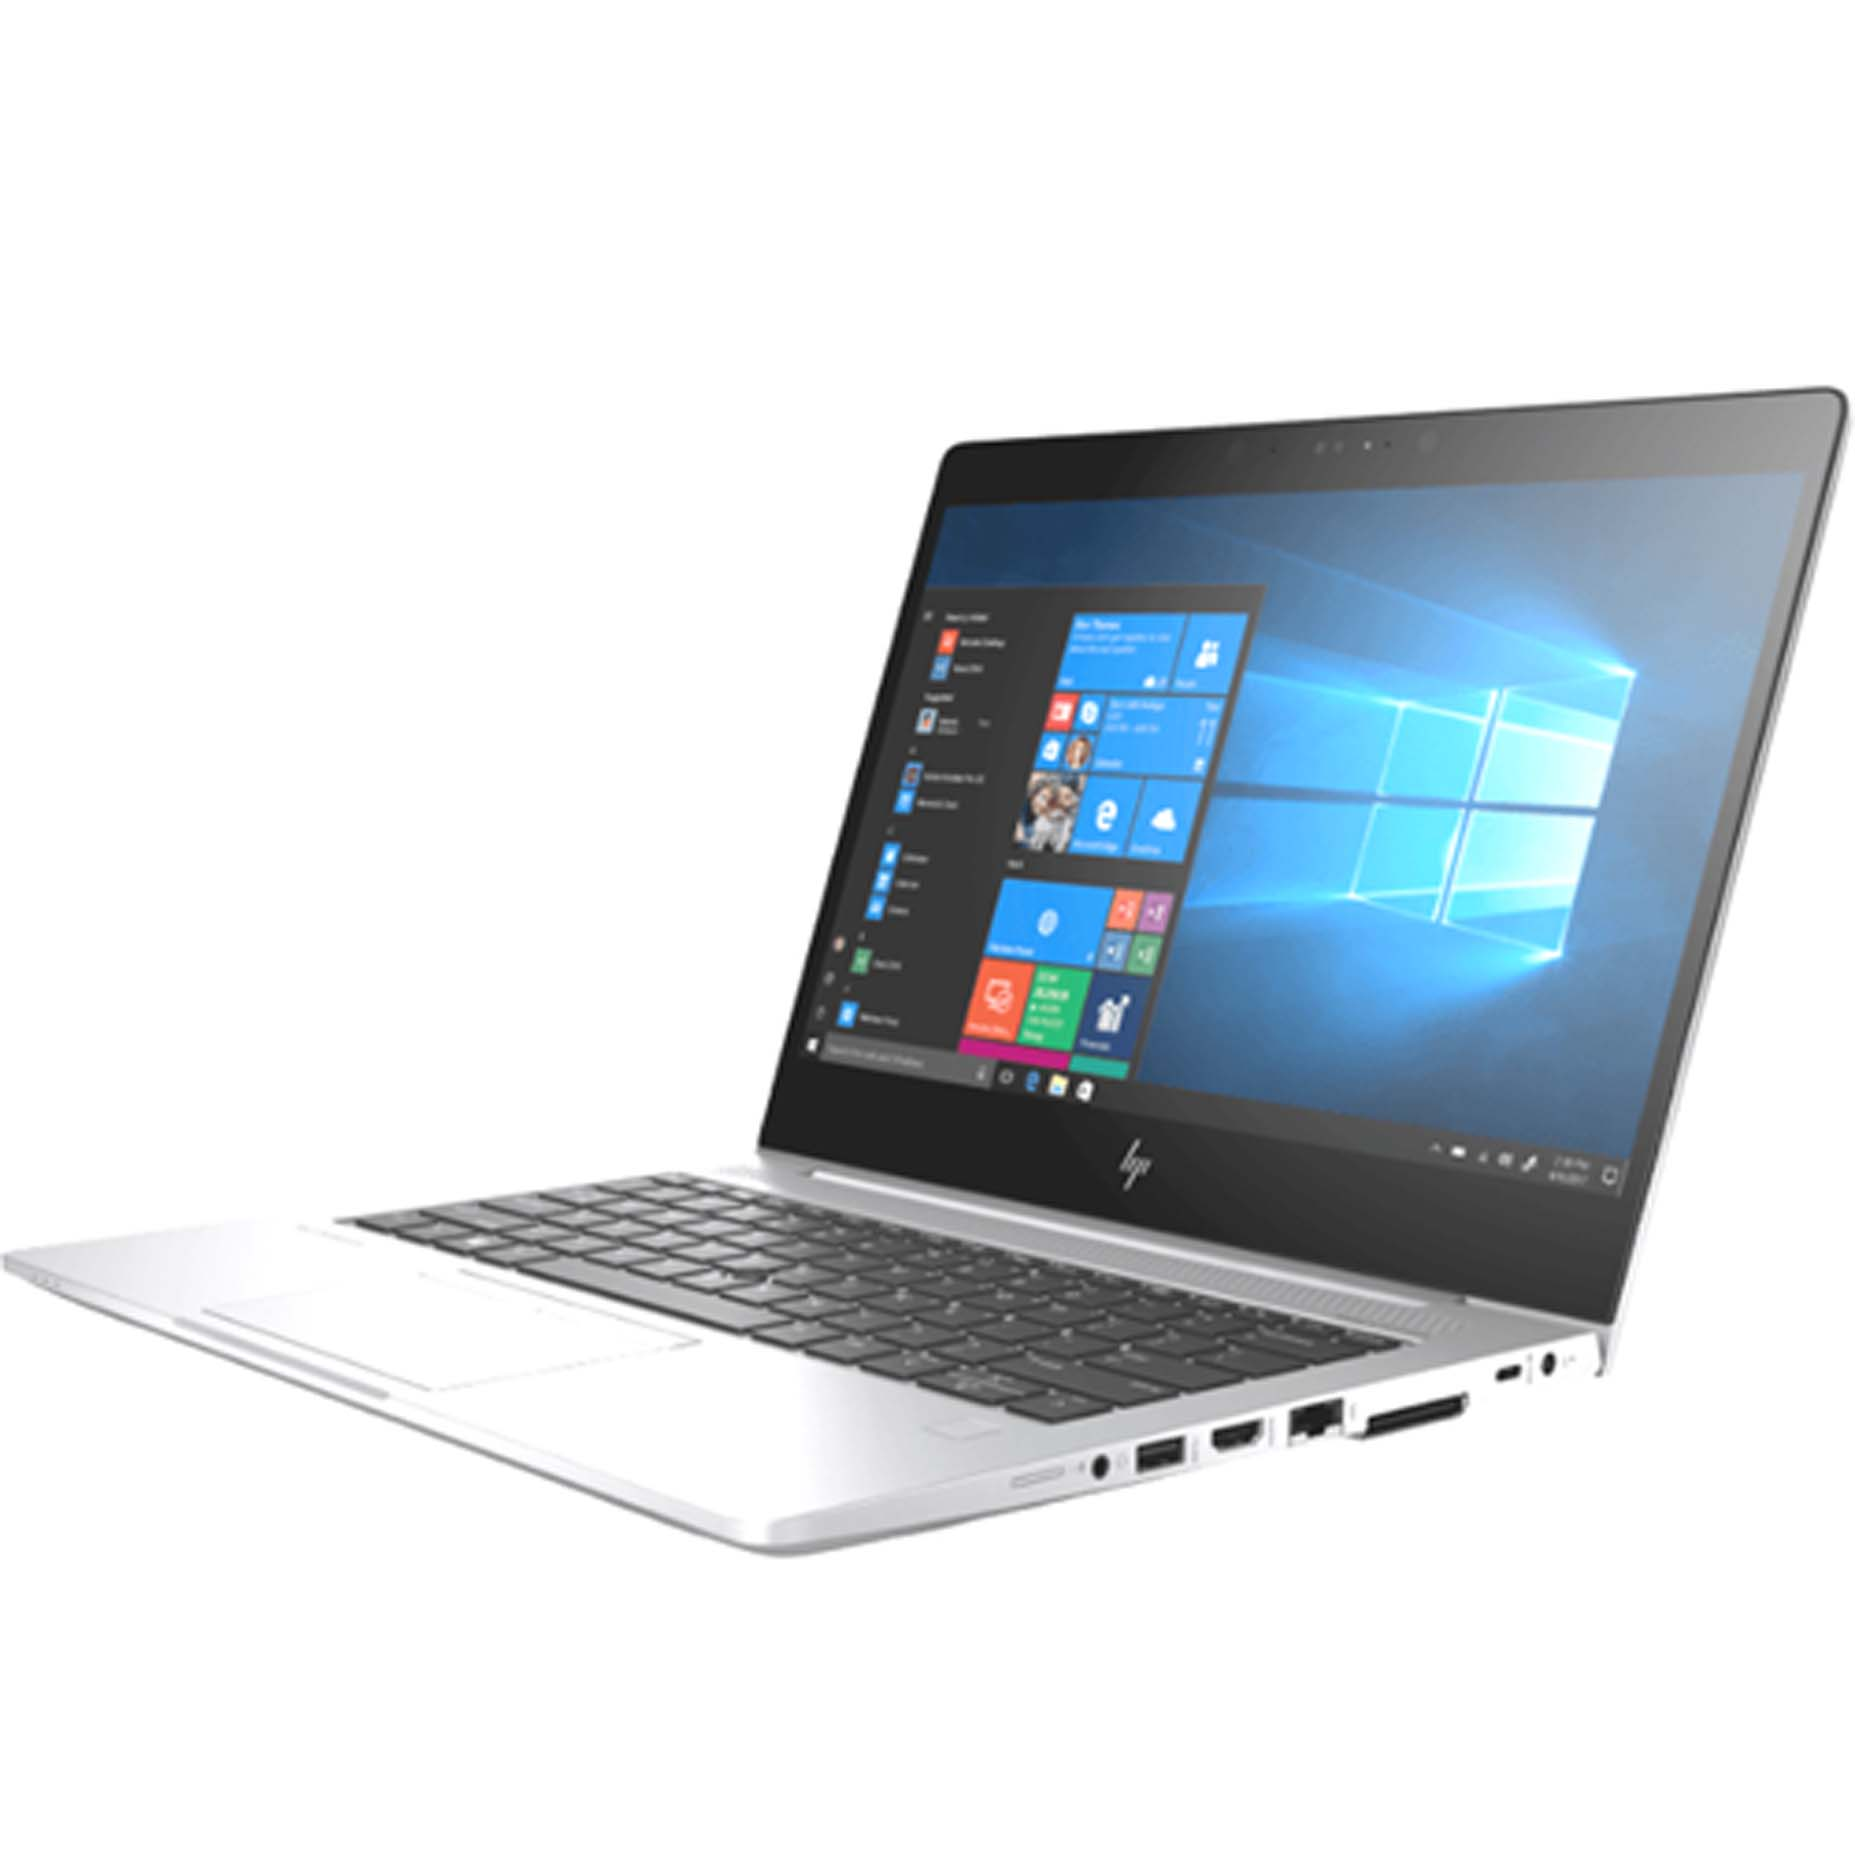 Harga HP EliteBook 735 G5 Notebook AMD Ryzen 8GB 512GB AMD Radeon Vega Win10 13.3 Inch